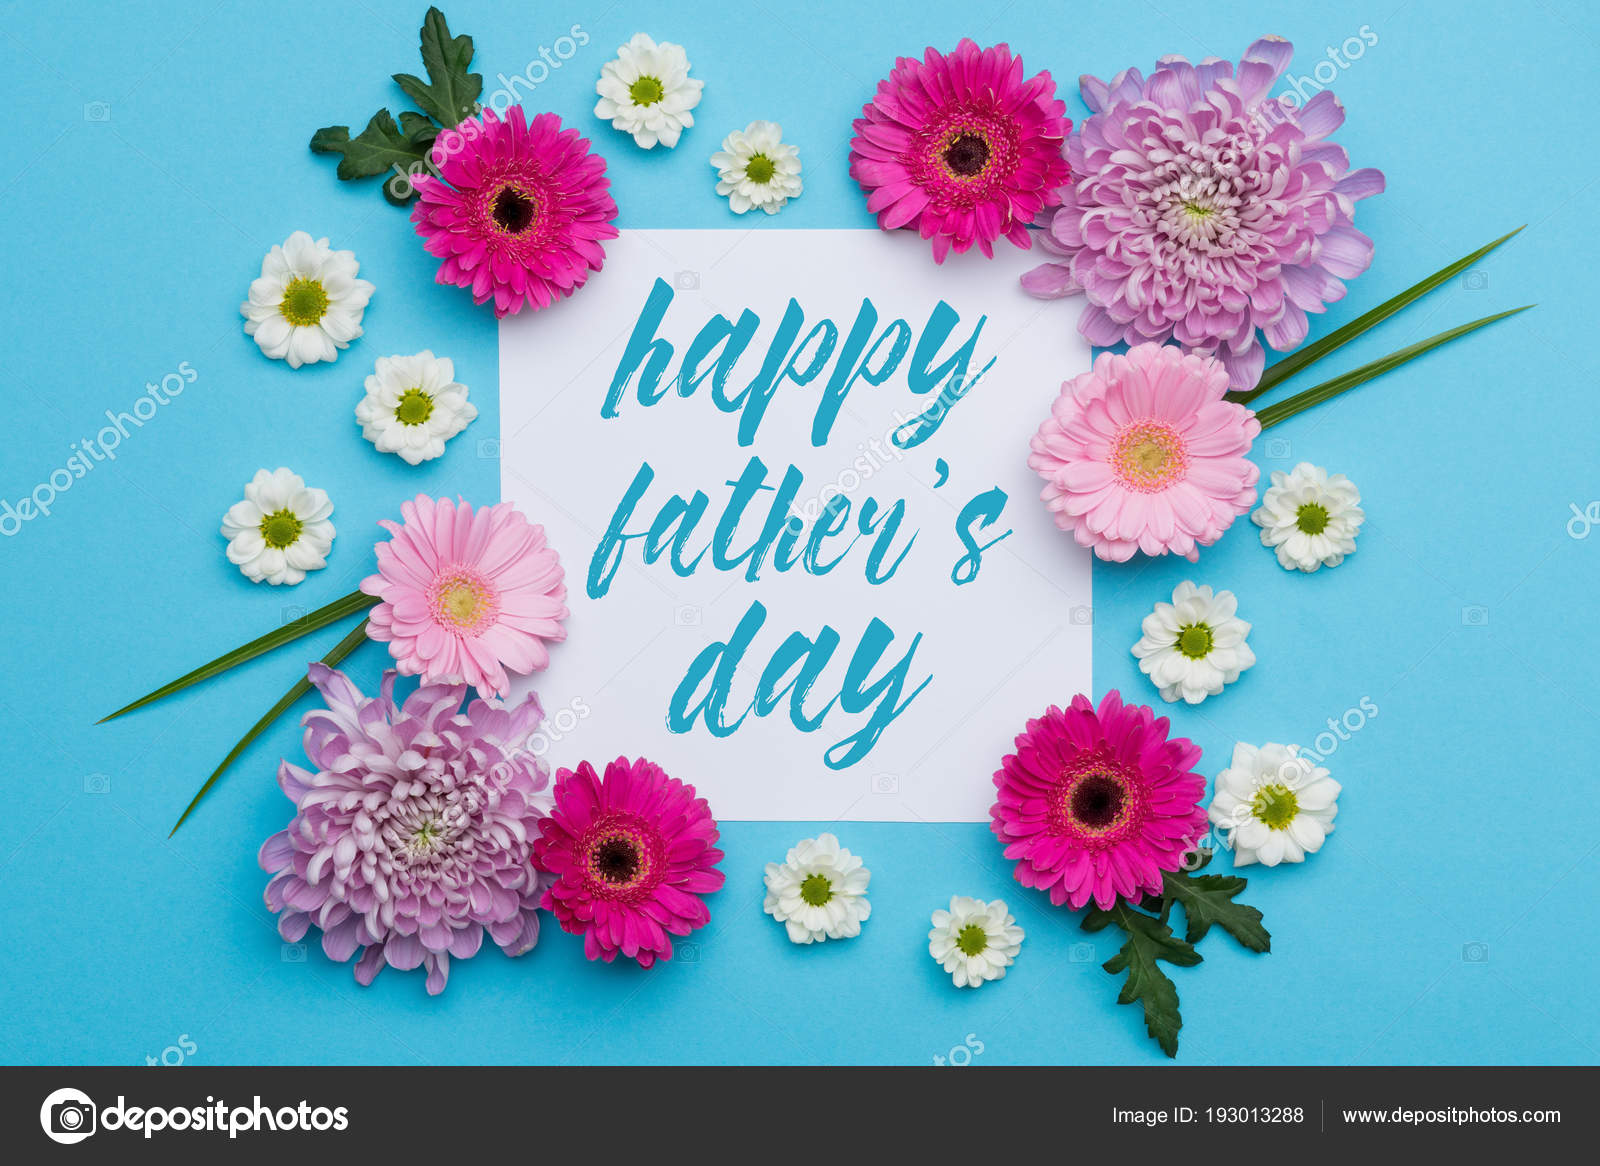 Flower day Fathers pictures best photo